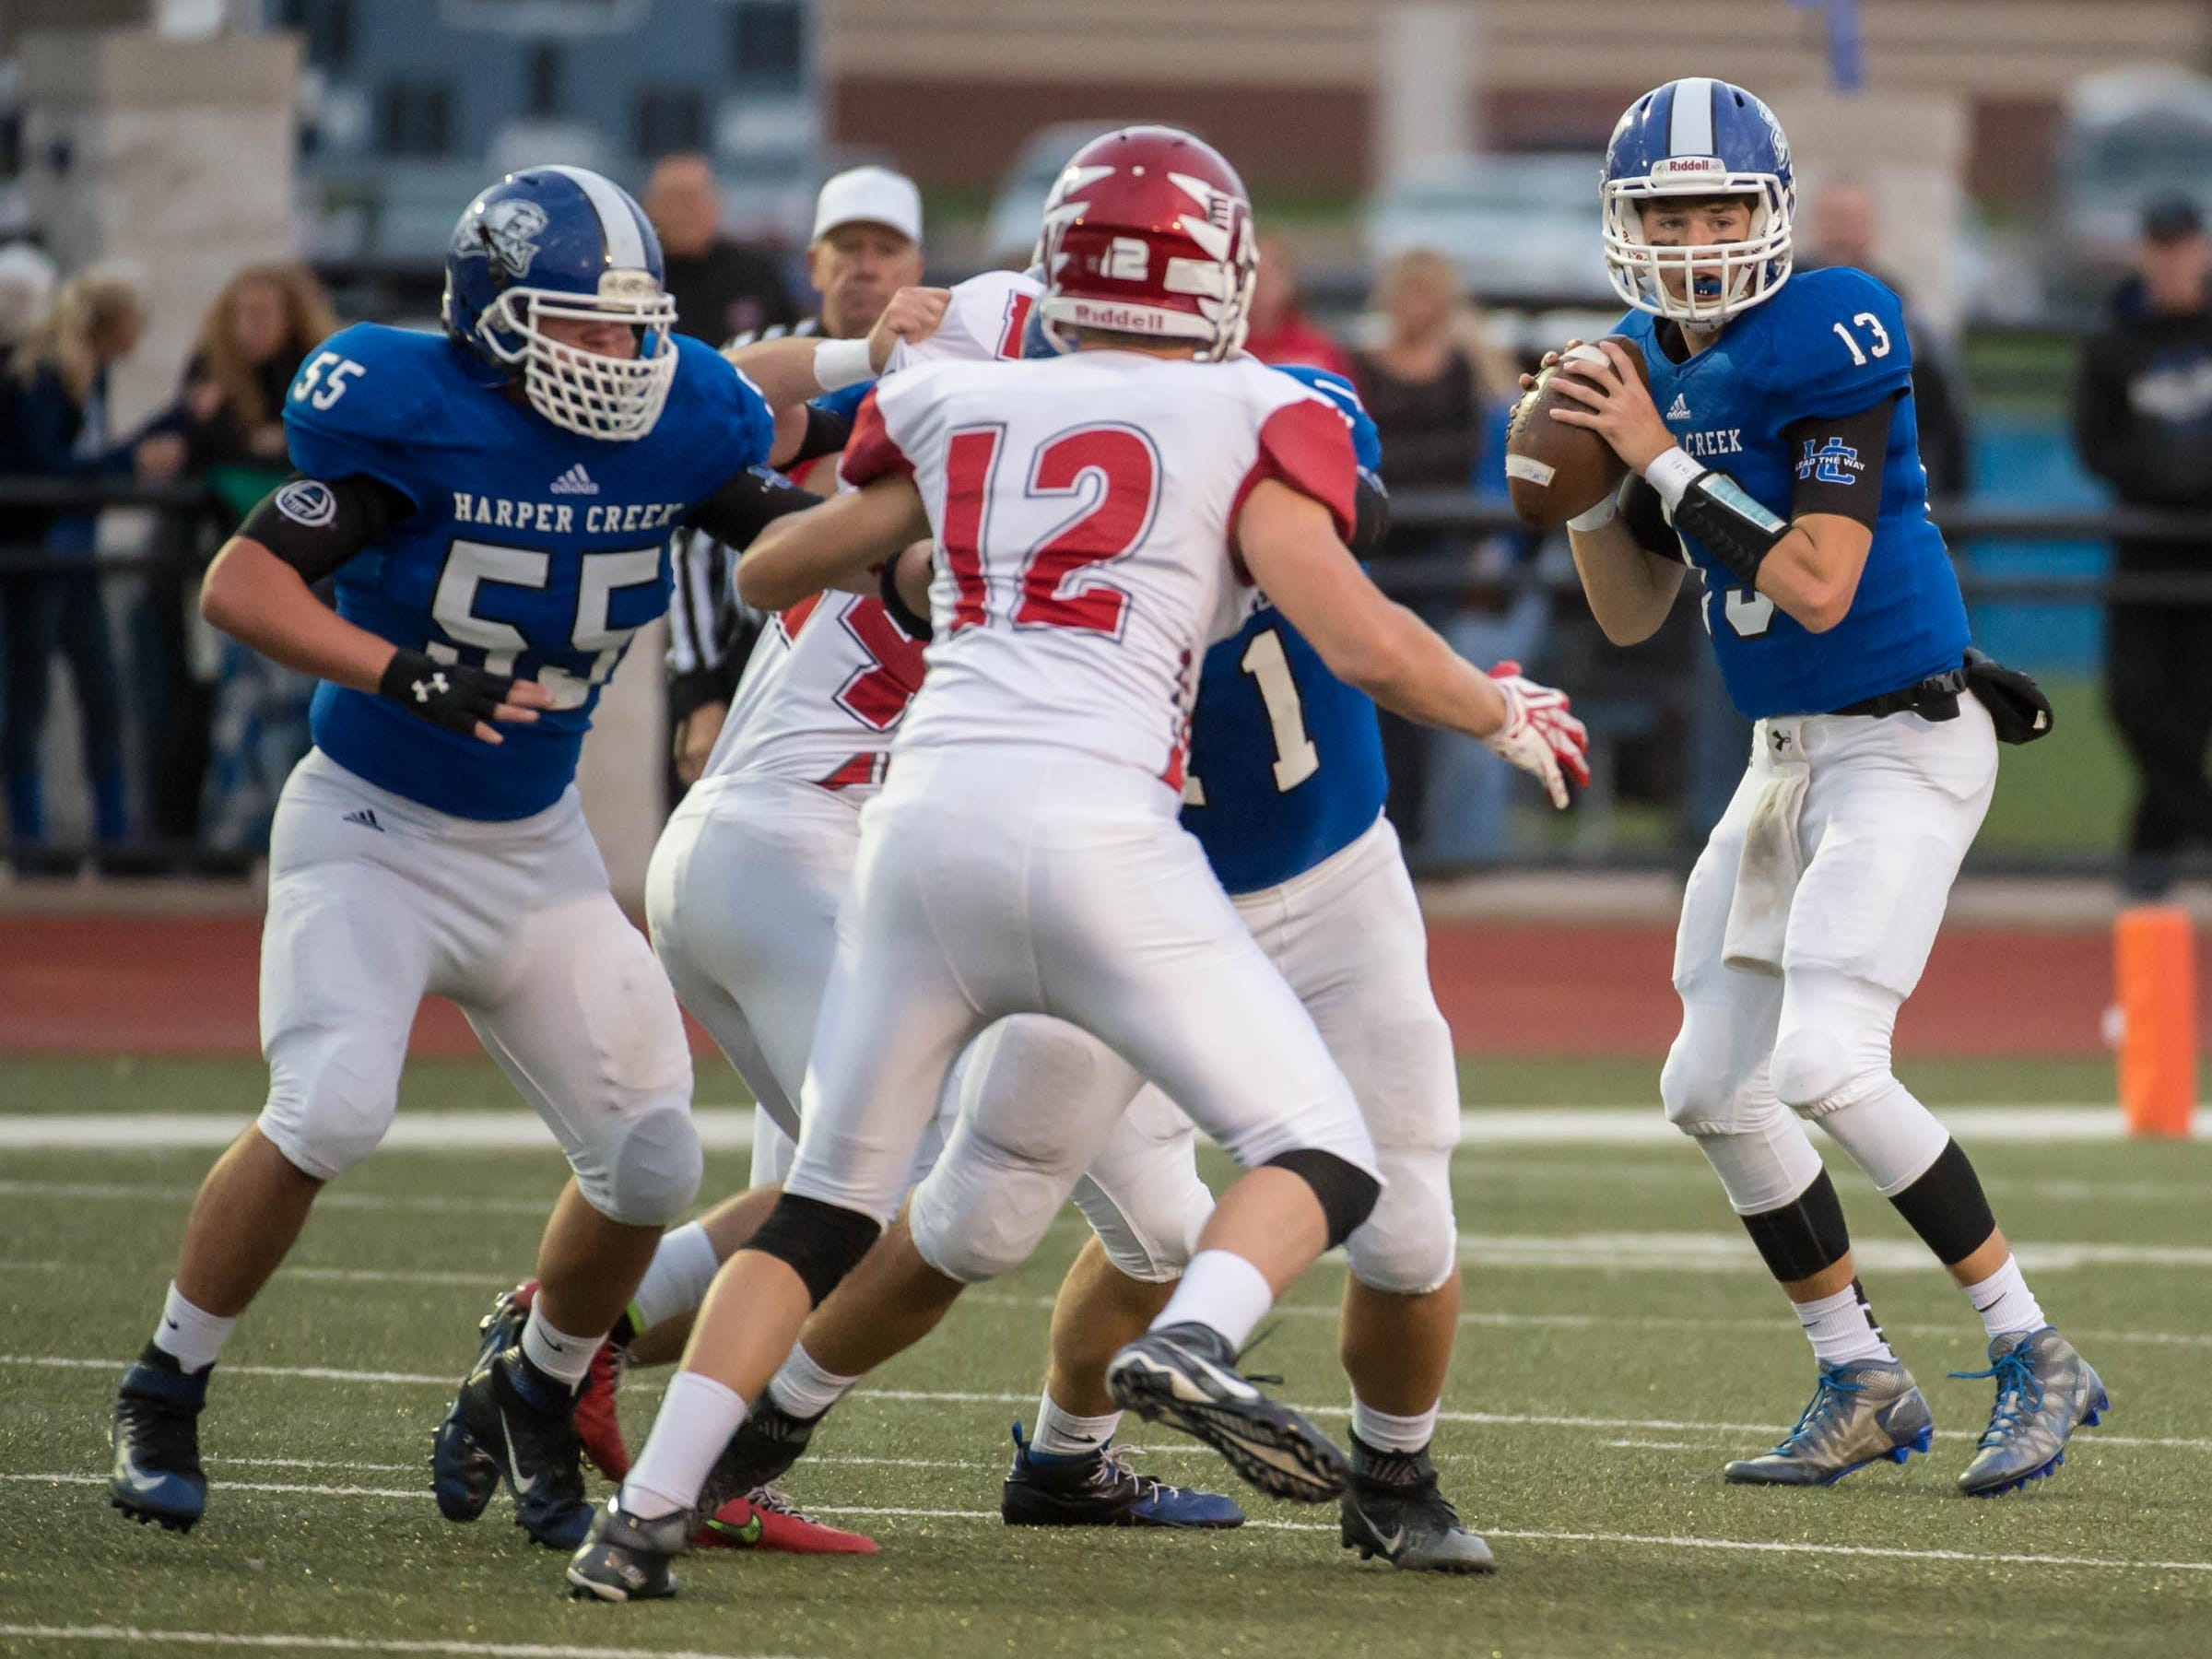 Harper Creek's David Thompson (no. 13) looks for a reciver down field against Coldwater Friday evening.